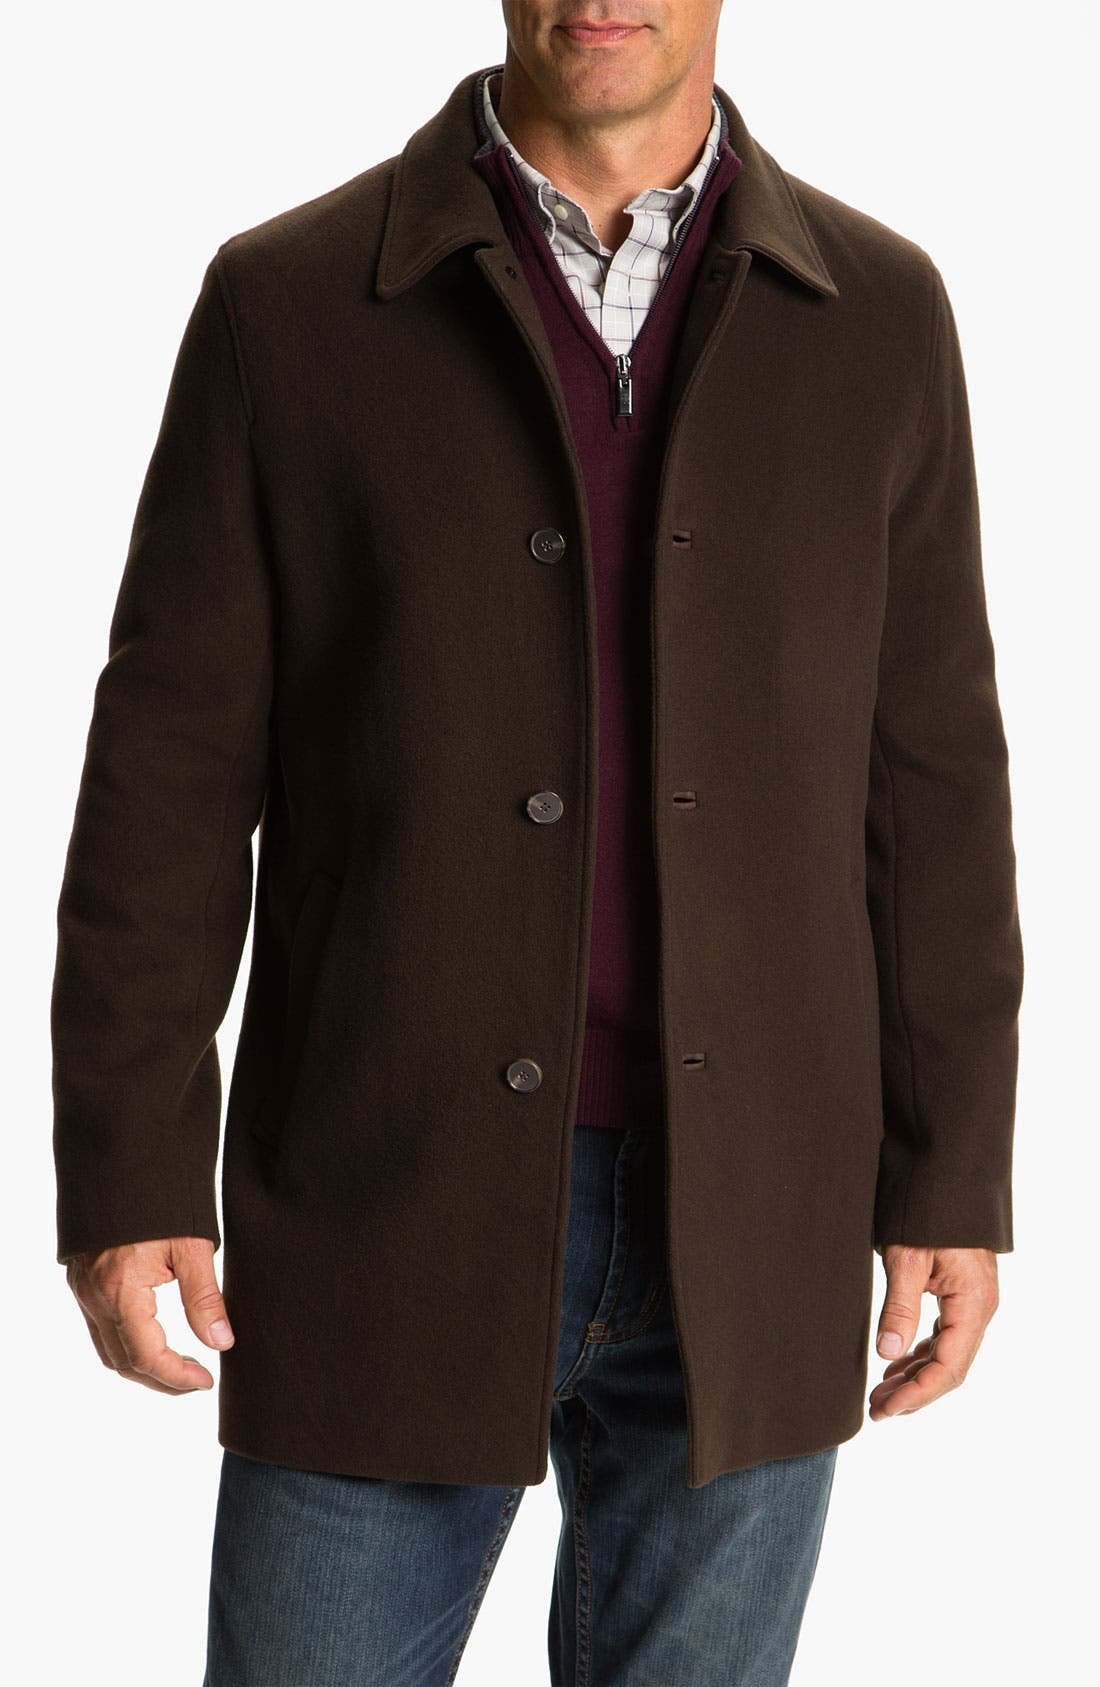 Alternate Image 1 Selected - Cole Haan Wool & Cashmere Blend Coat (Online Exclusive)